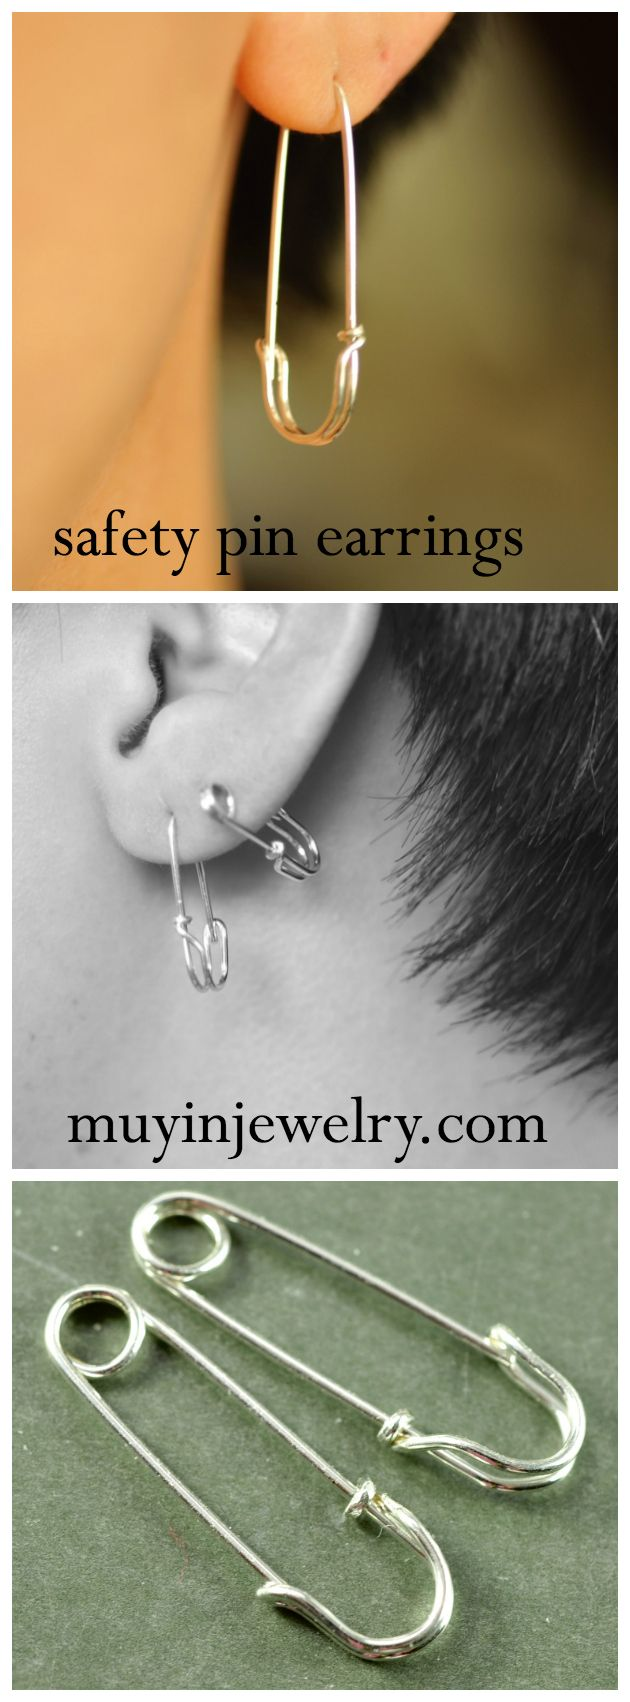 Cute Sterling Silver And 14k Gold Filled Safety Pin Earrings Muyinjewelry